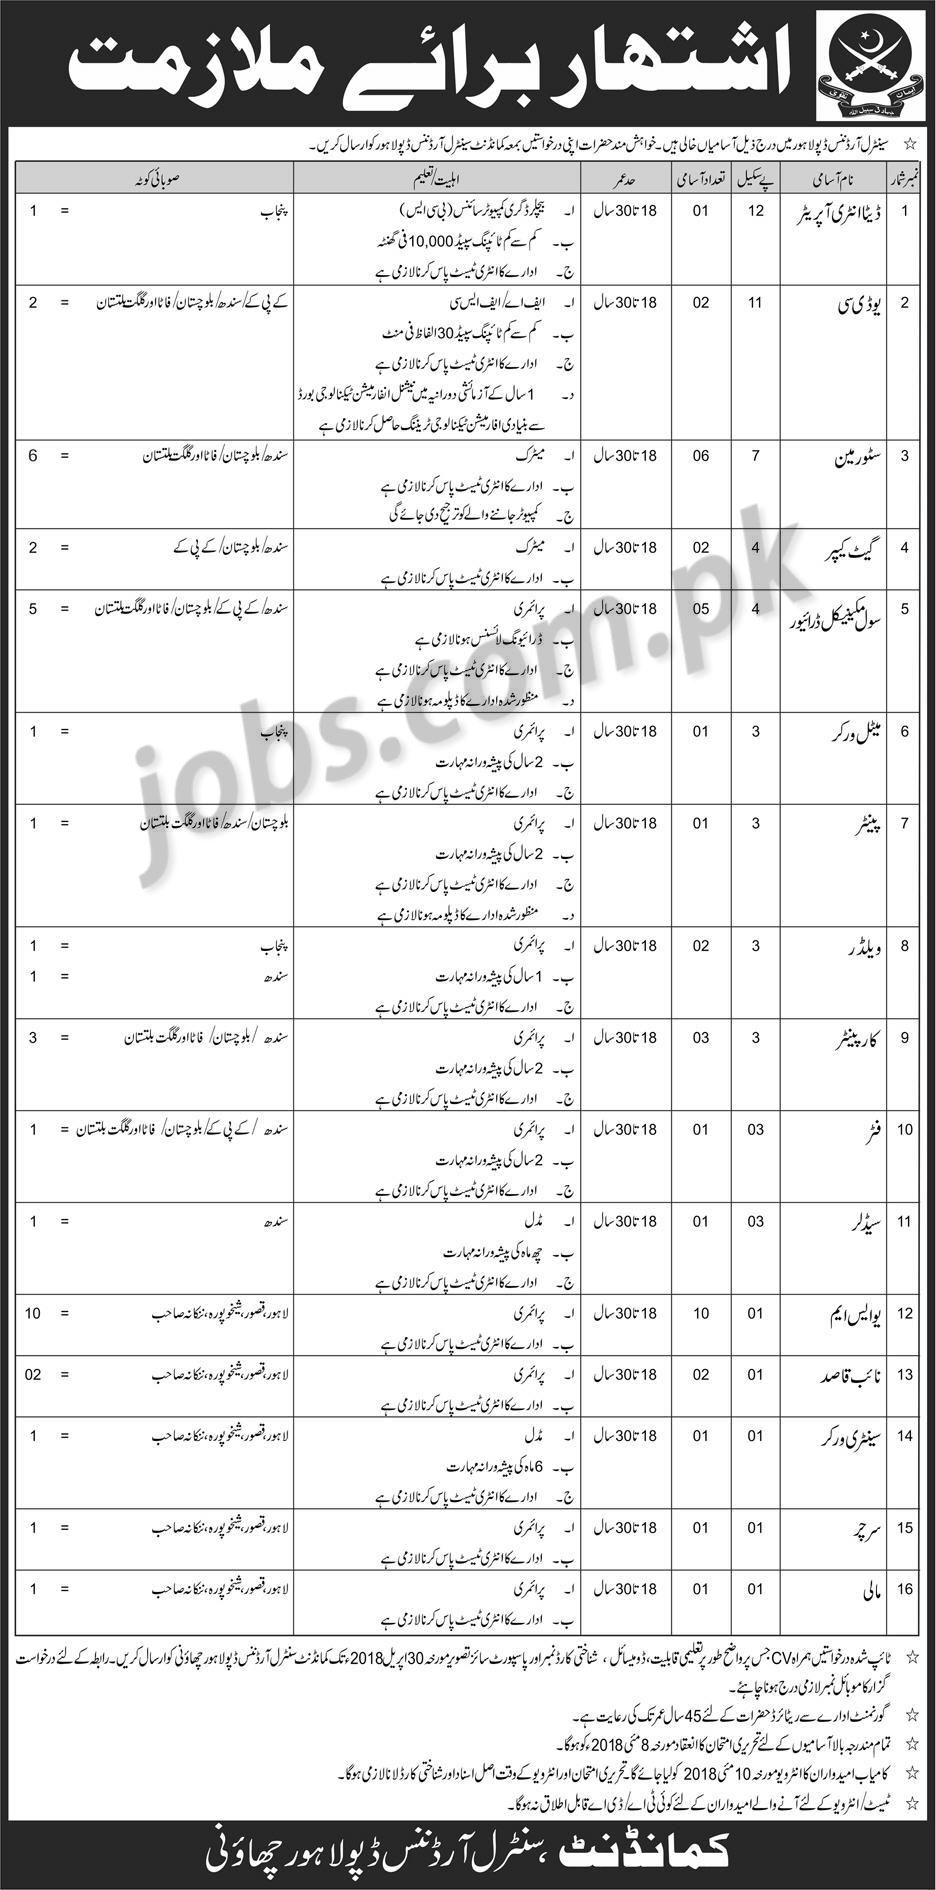 Central Ordnance Depot Lahore Pakistan Army Jobs 2018 For 40 Clerks Data Entry Operator Storeman Civil Drivers Usm Other Staff on administrative jobs